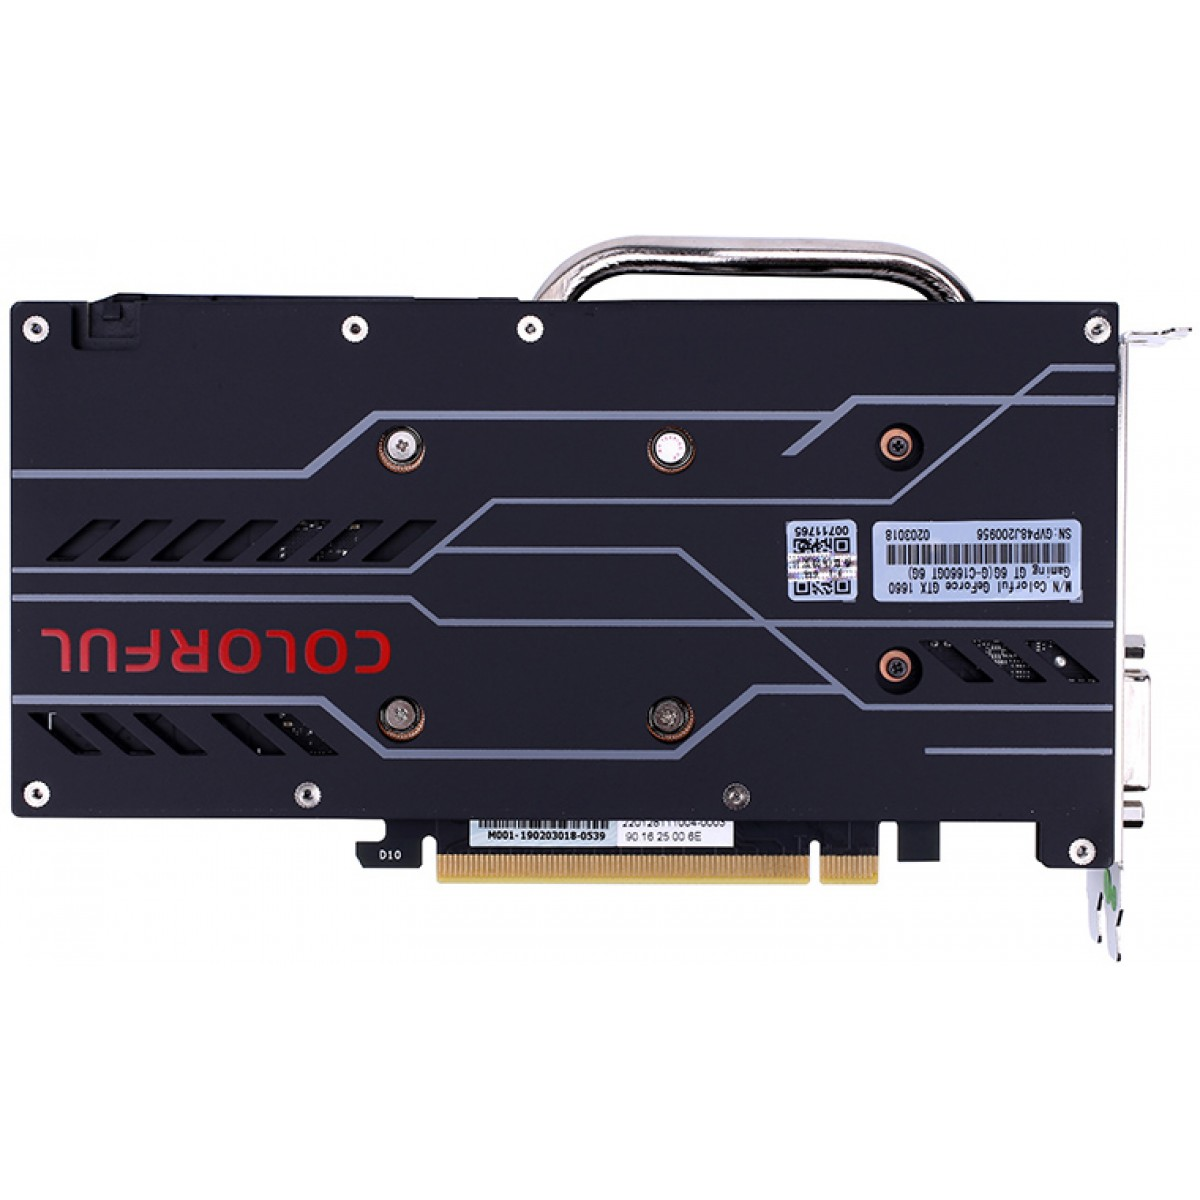 Placa de Vídeo Colorful GeForce GTX 1660 6G Dual, 6GB GDDR5, 192Bit